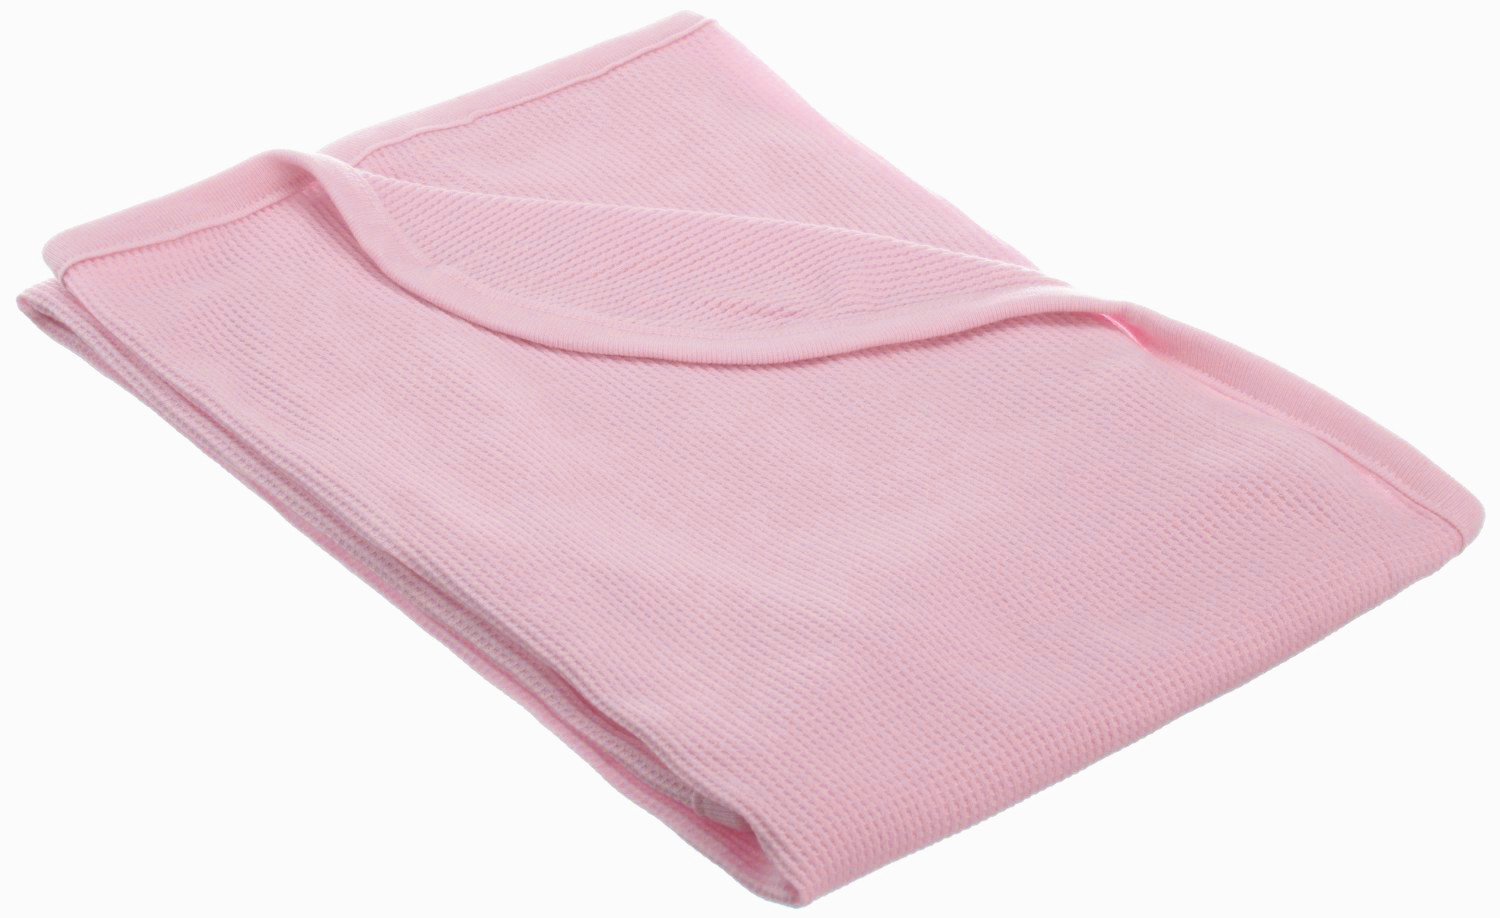 American Baby Company Full Size 30 X 40 - 100% Cotton Swaddle/Thermal Blanket, Pink